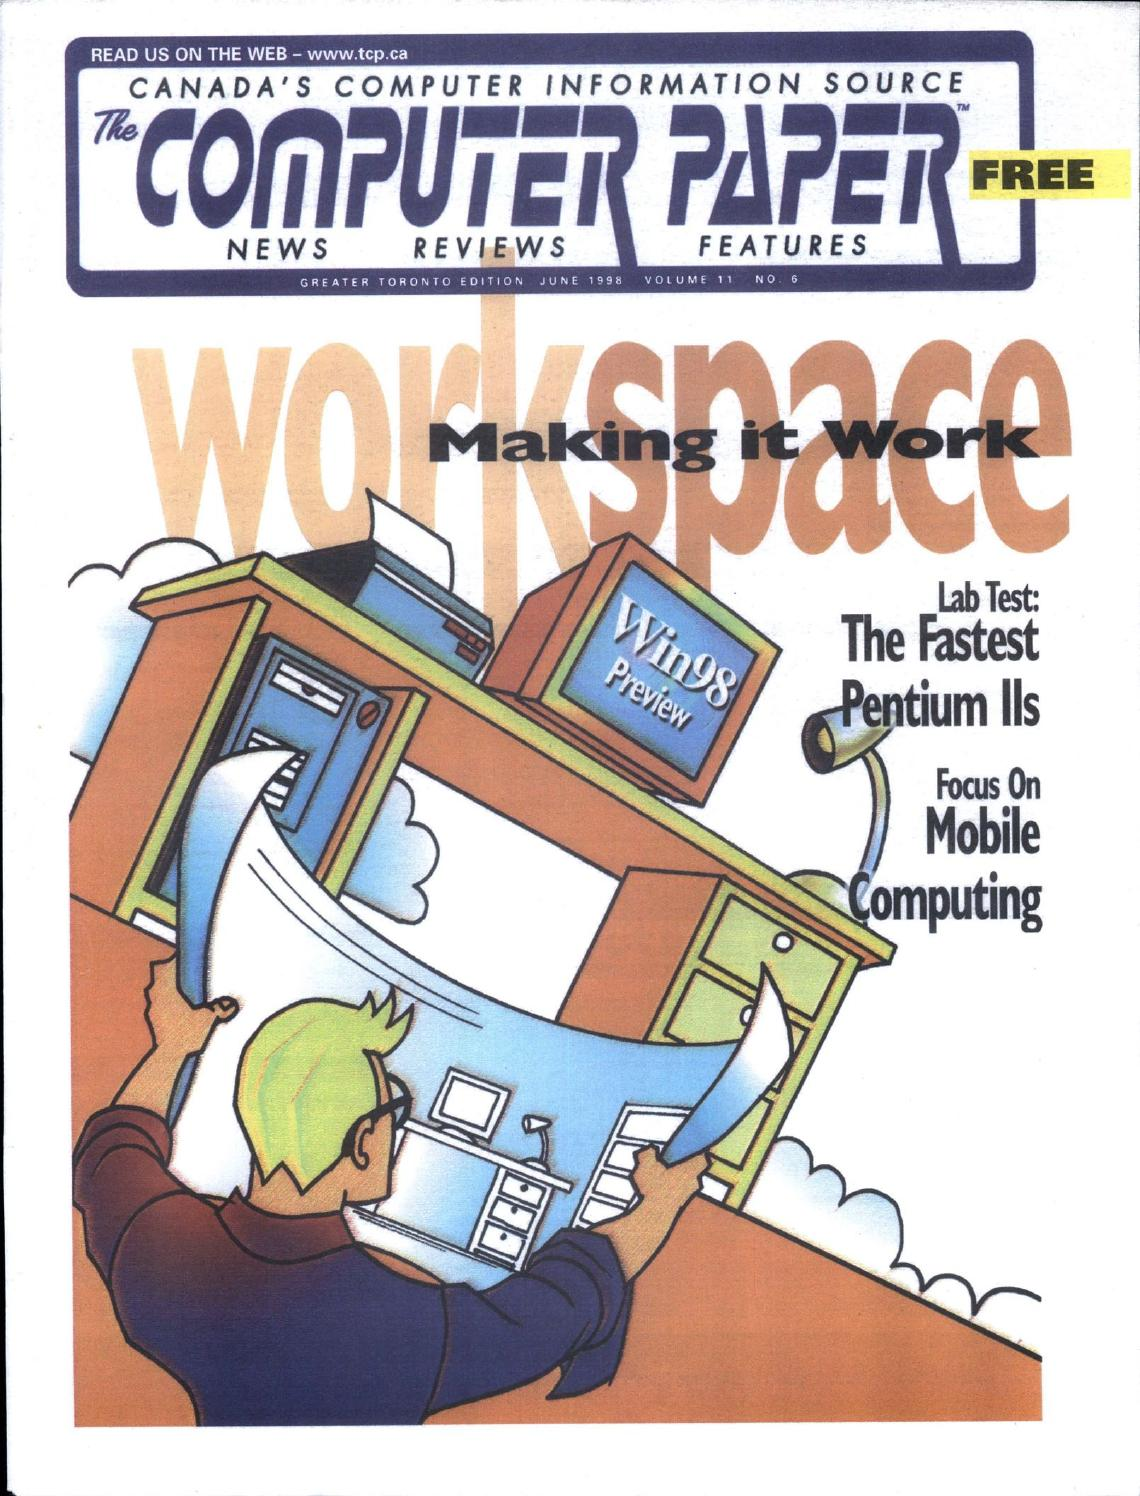 1998 03 Toronto Computes! by The Computer Paper.